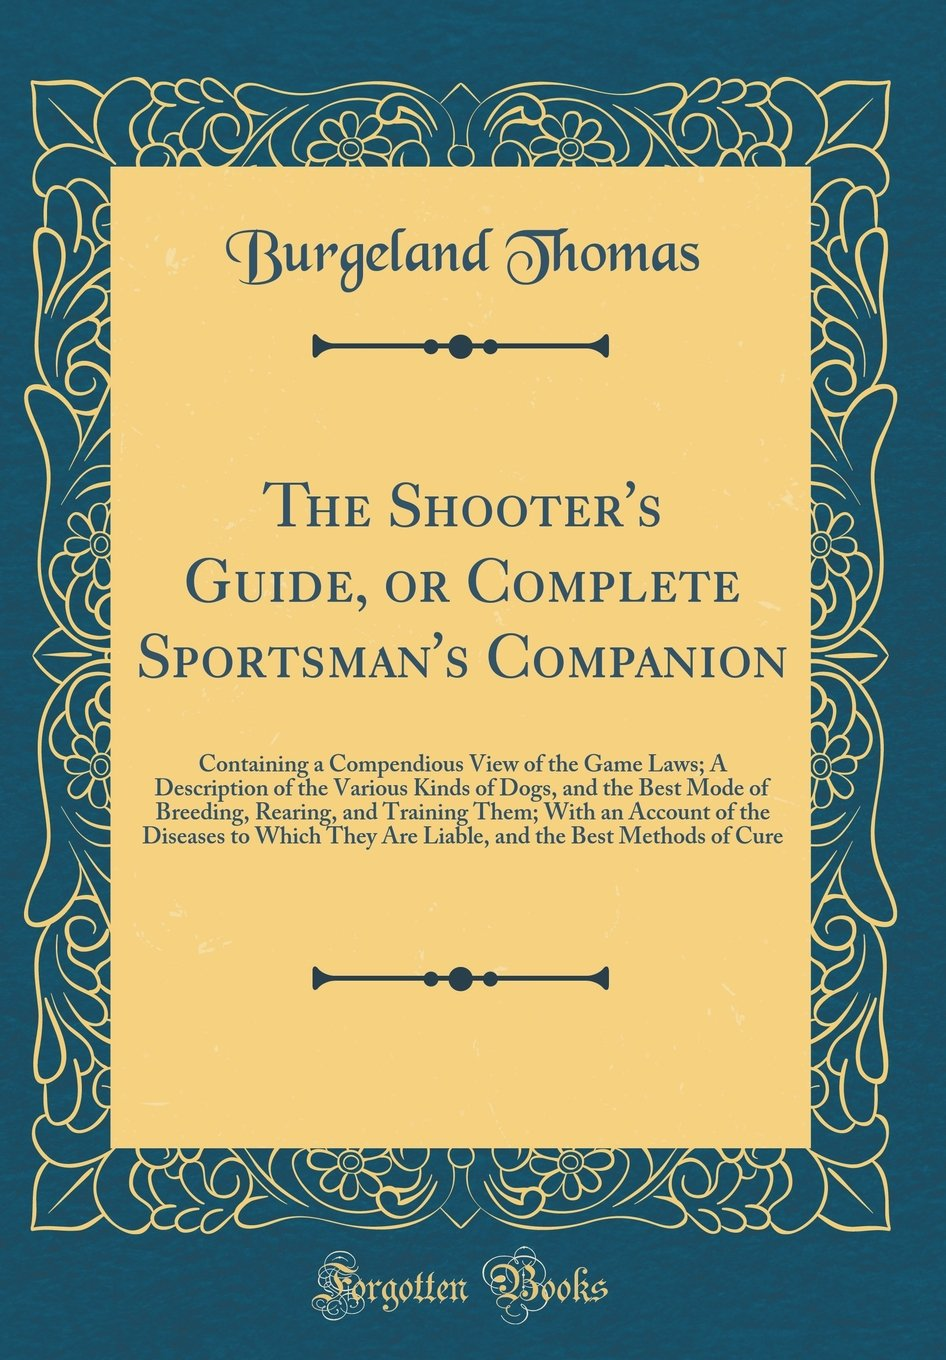 The Shooter's Guide, or Complete Sportsman's Companion: Containing a Compendious View of the Game Laws; A Description of the Various Kinds of Dogs. an Account of the Diseases to Which They Ar PDF